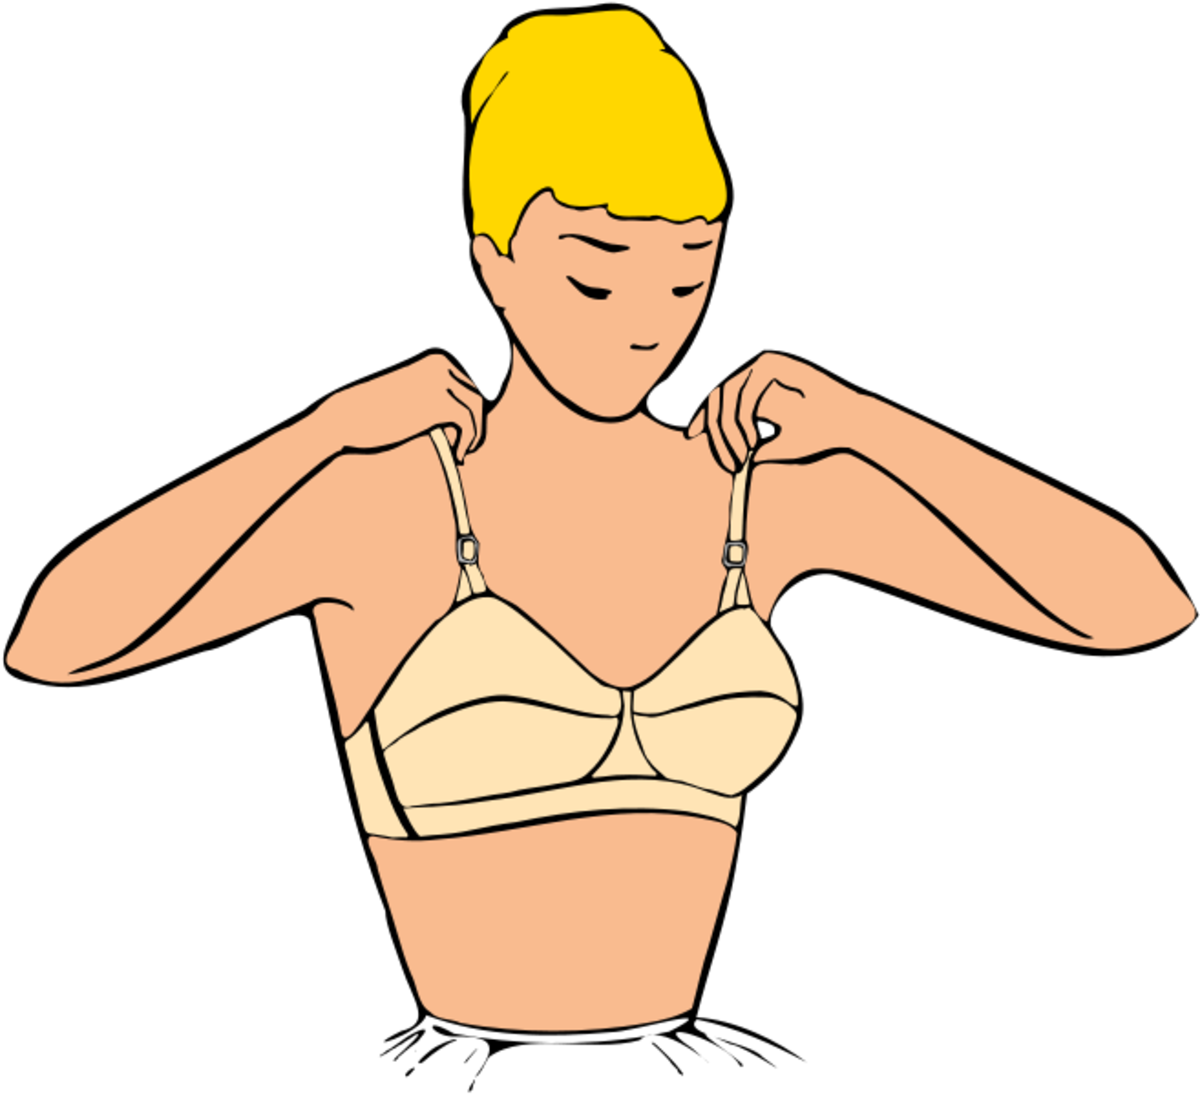 bra-tips-for-small-busted-women